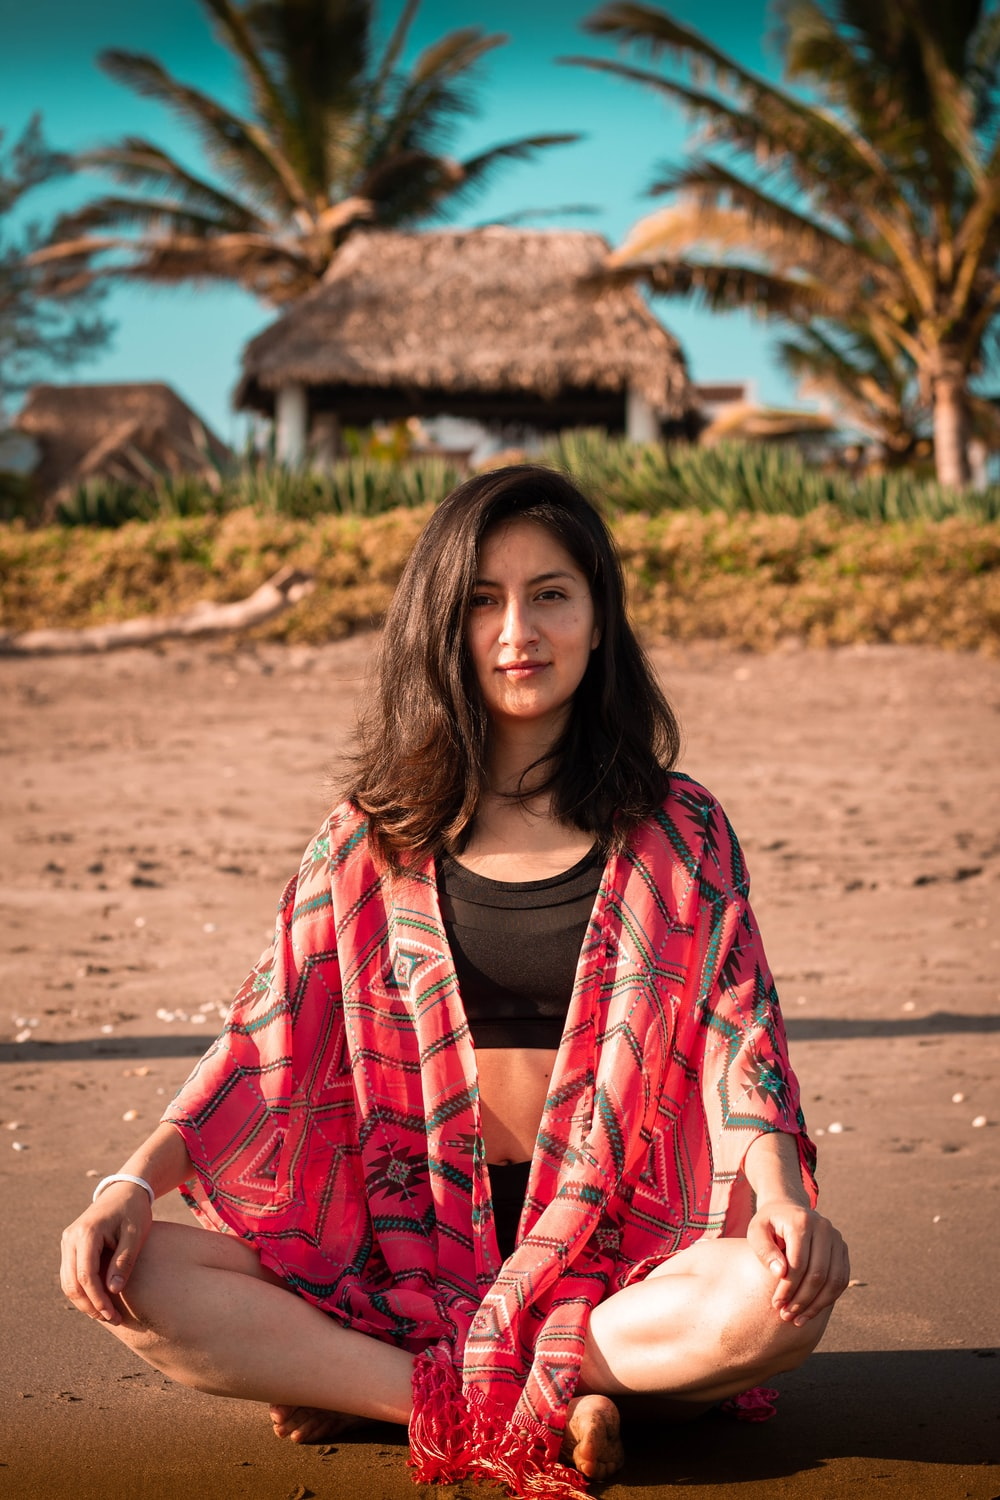 woman wearing black crop top and black shorts Indian sitting on beach sand during daytime